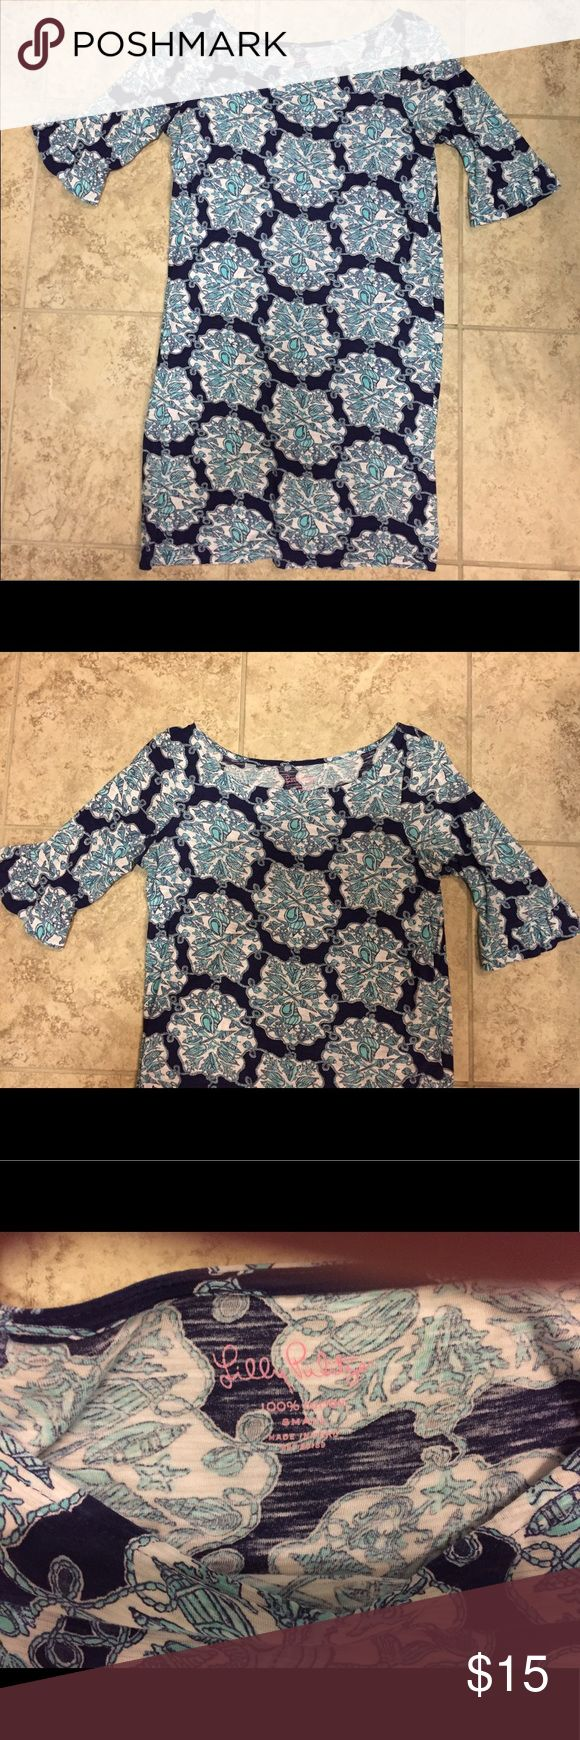 Lilly Pulitzer Navy Blue and White Dress Great casual Lilly dress! Great for day or for the beach. Size small. Great condition! Lilly Pulitzer Dresses Mini